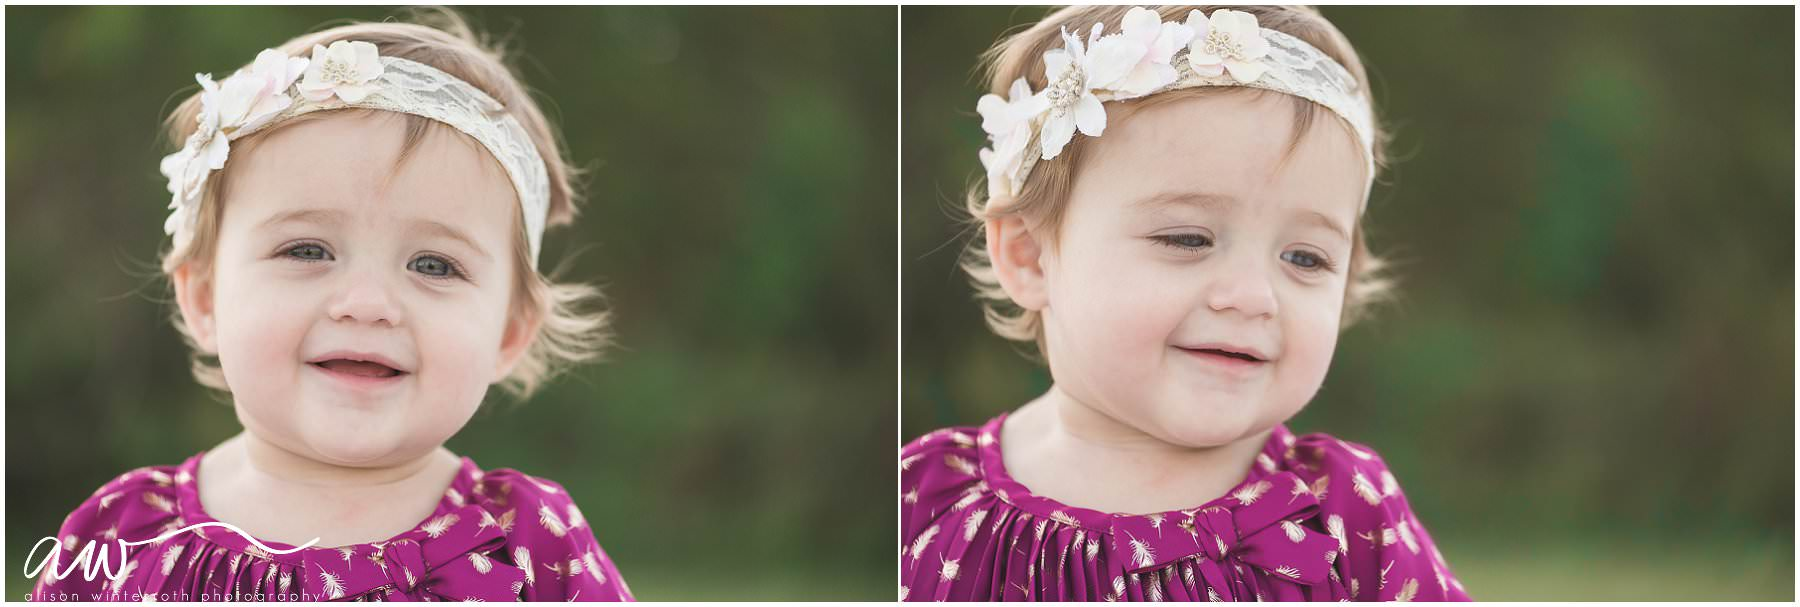 Tampa Family Photographer, Tampa Child Photographer, Child Photography 1st Birthday photos